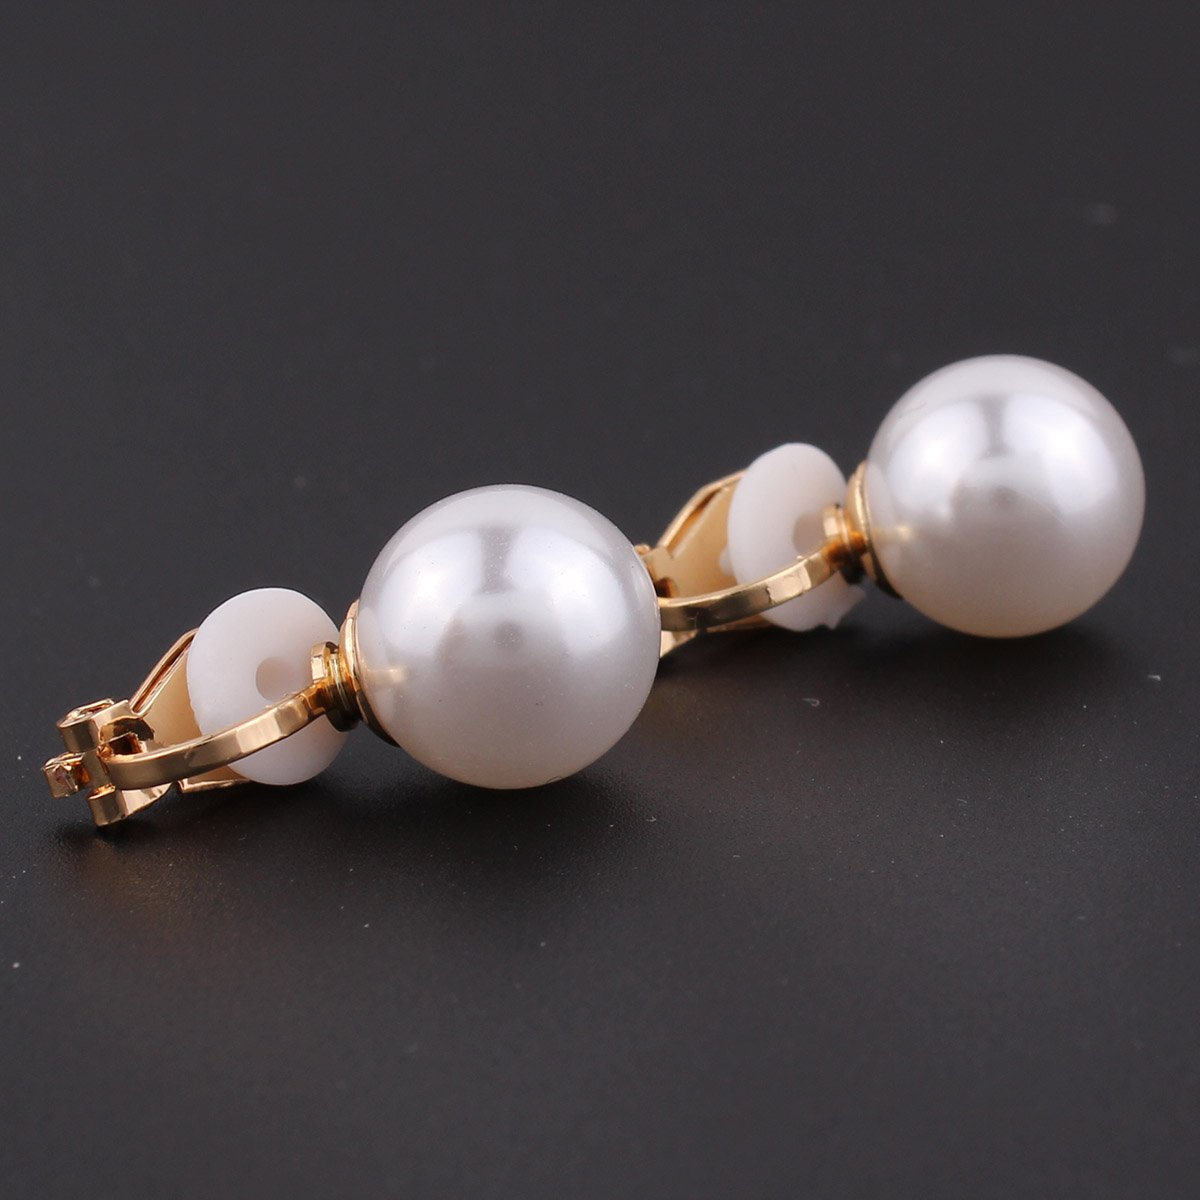 Honey 1 Pair Sell Jewelry New Brand Design Gold Color Pearl Hoop Earrings For Women 2018 New Accessories Wholesale 4mm 6mm 8mm Special Buy Jewelry & Accessories Hoop Earrings